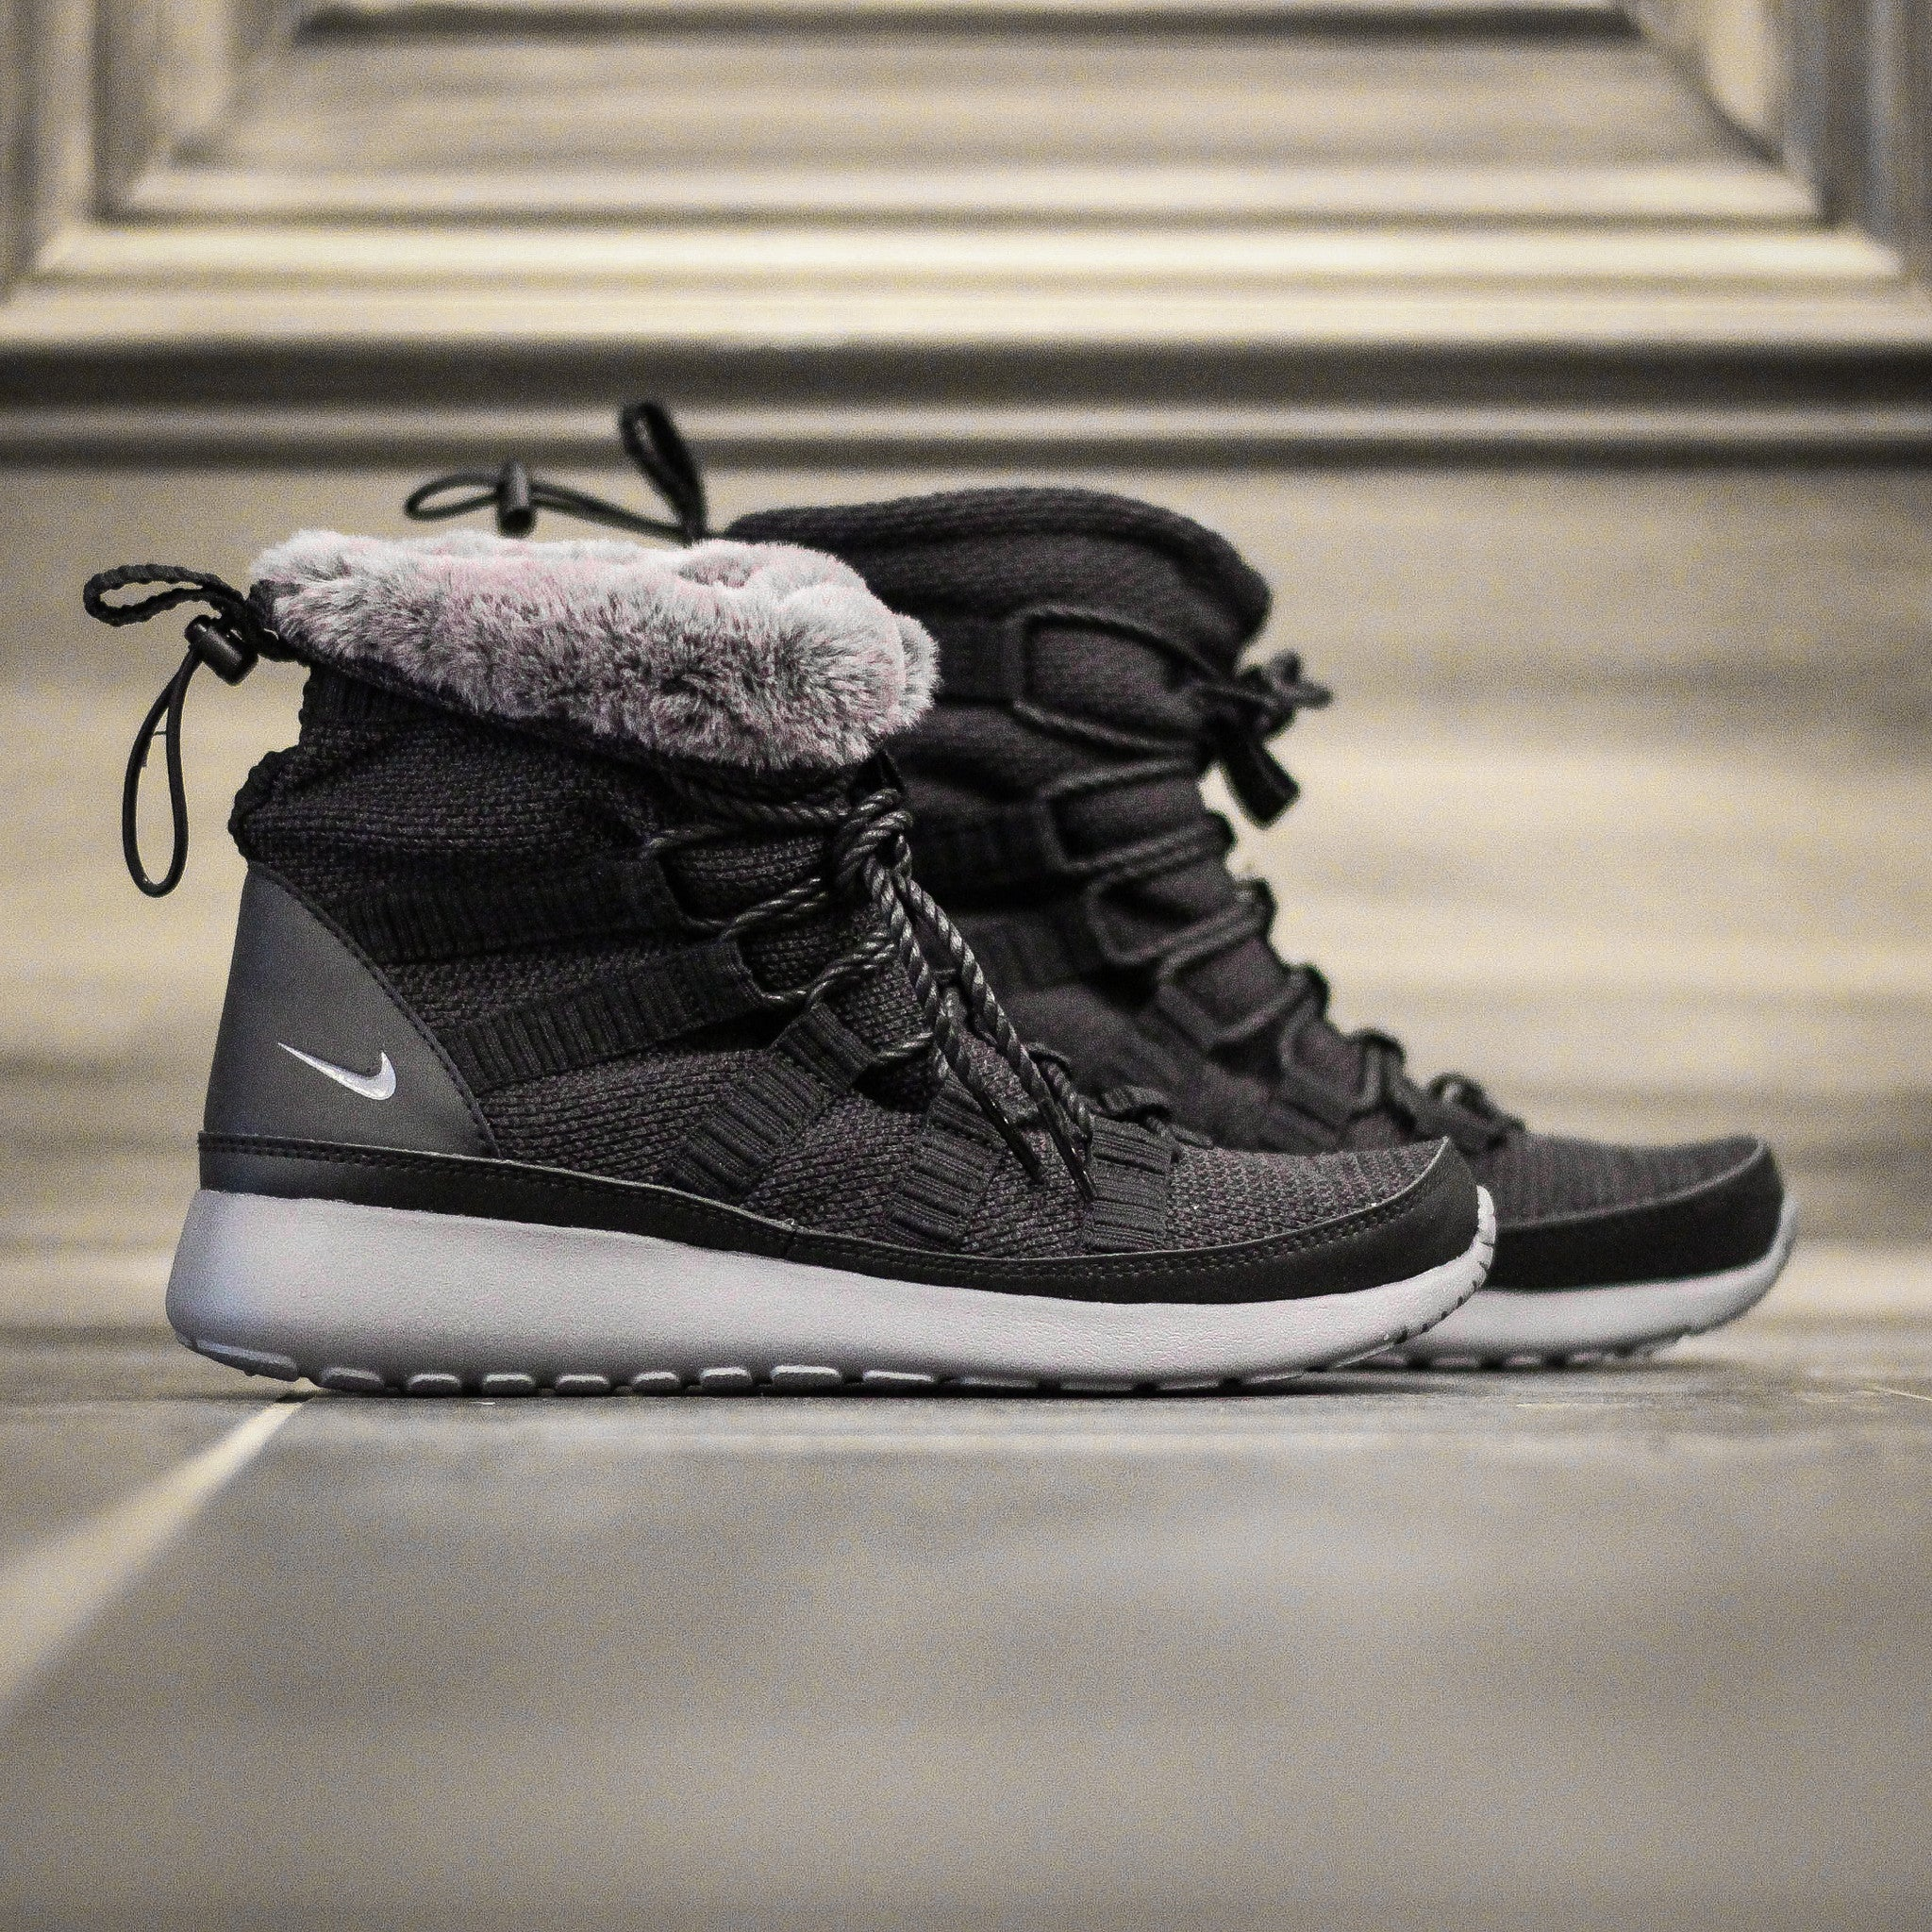 ddb88c89464e7 nike roshe one hi flash winter 36 38.5 new99 lined winter boots sneakerboot  run whats it worth